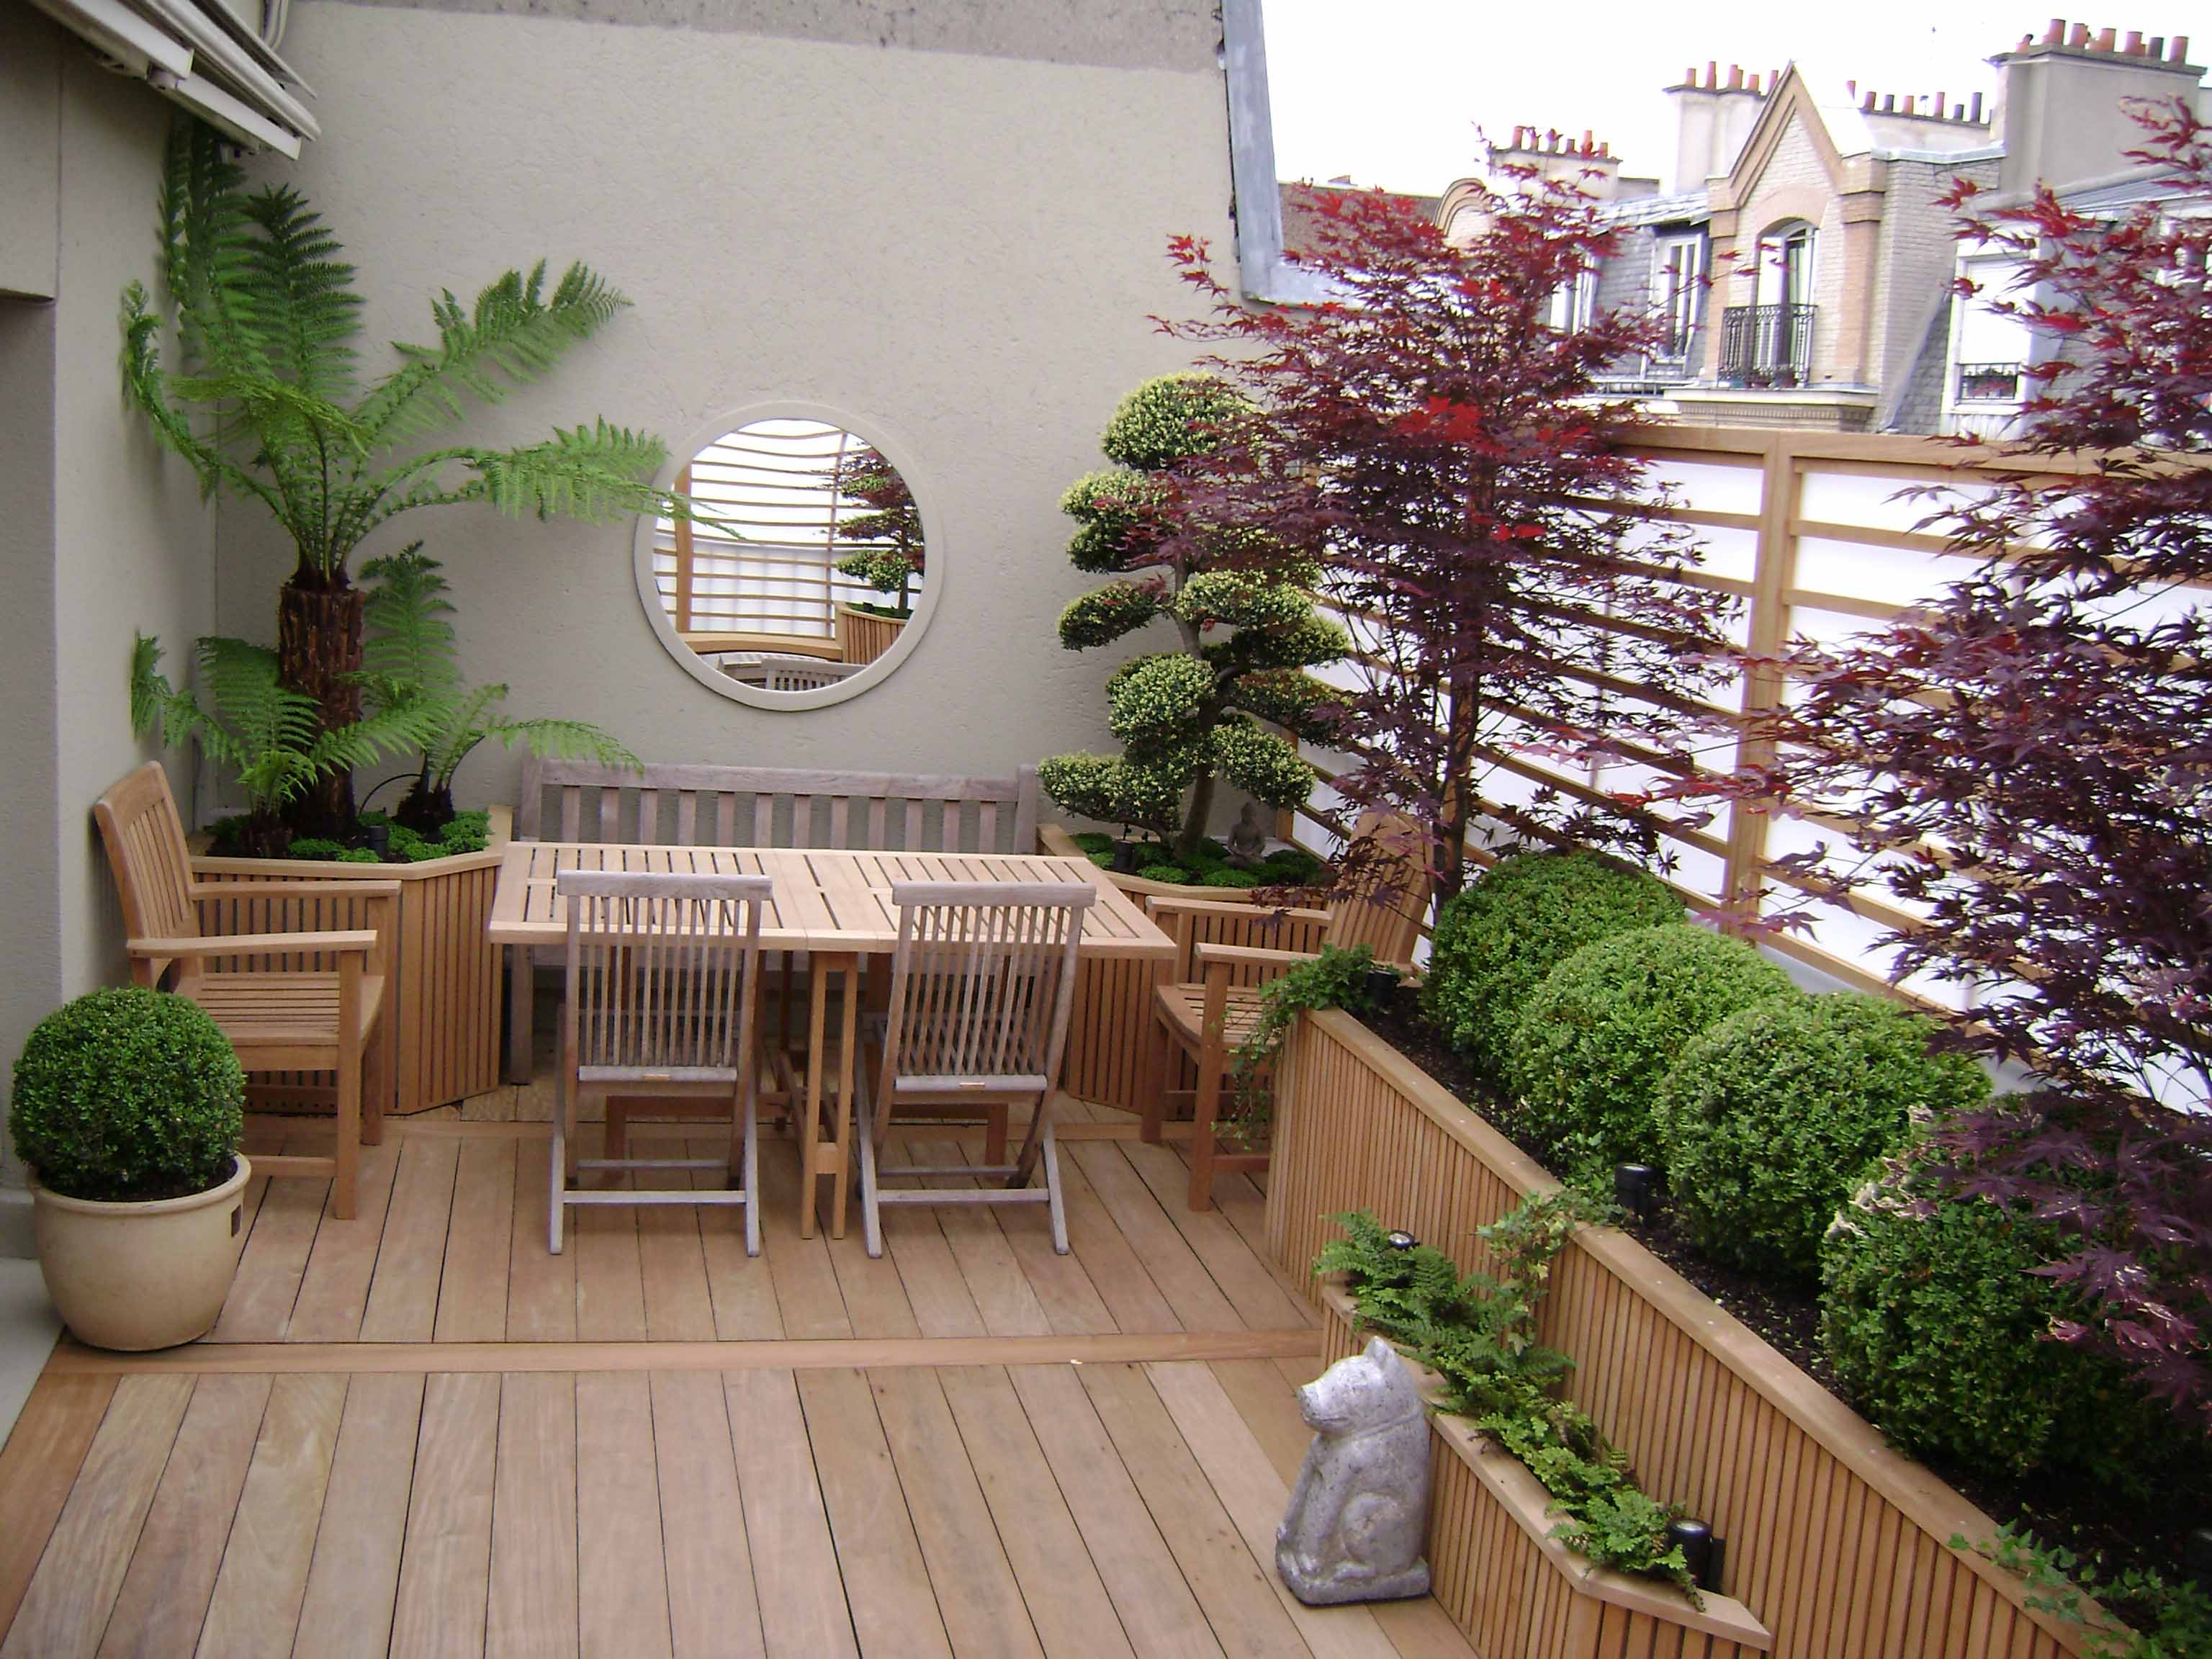 D coration sur terrasse for Decoration terrasse exterieure moderne